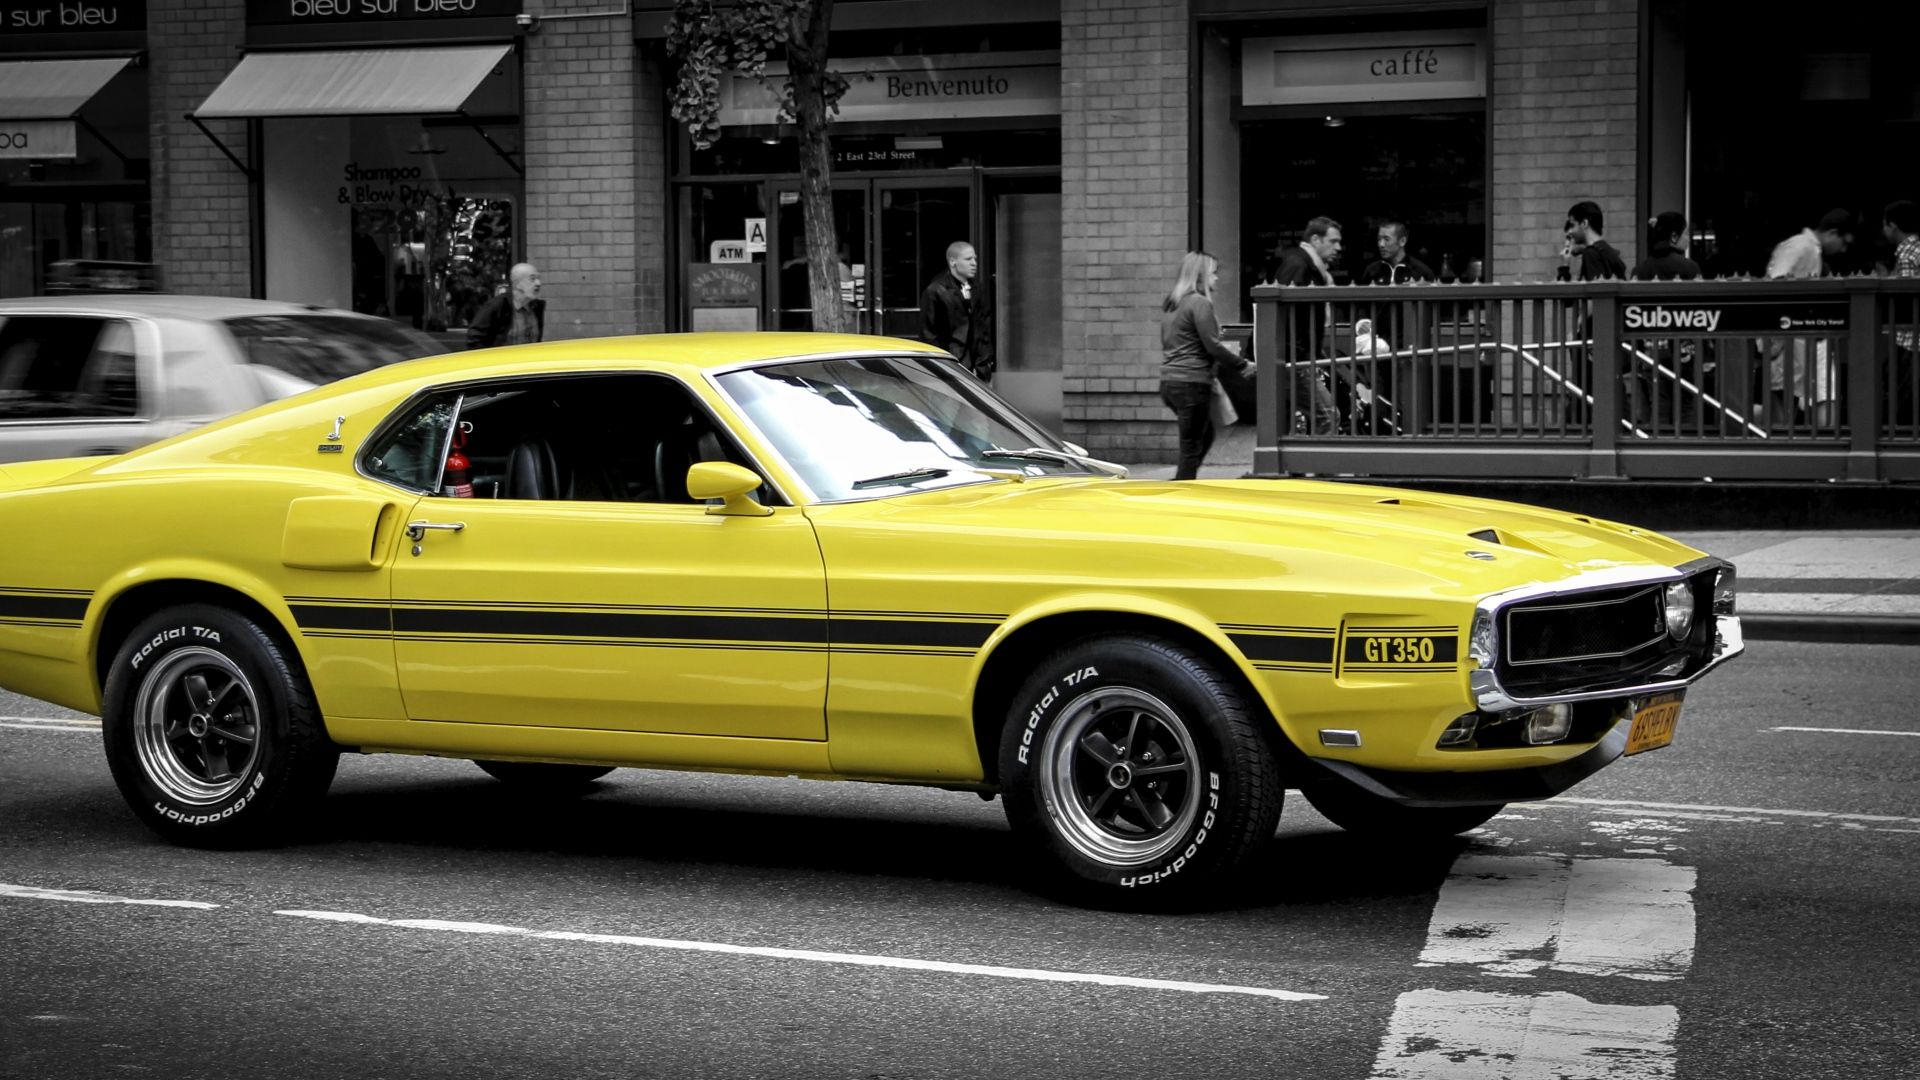 Ford Mustang Gt350 Muscle Car Wallpapers And Backgrounds